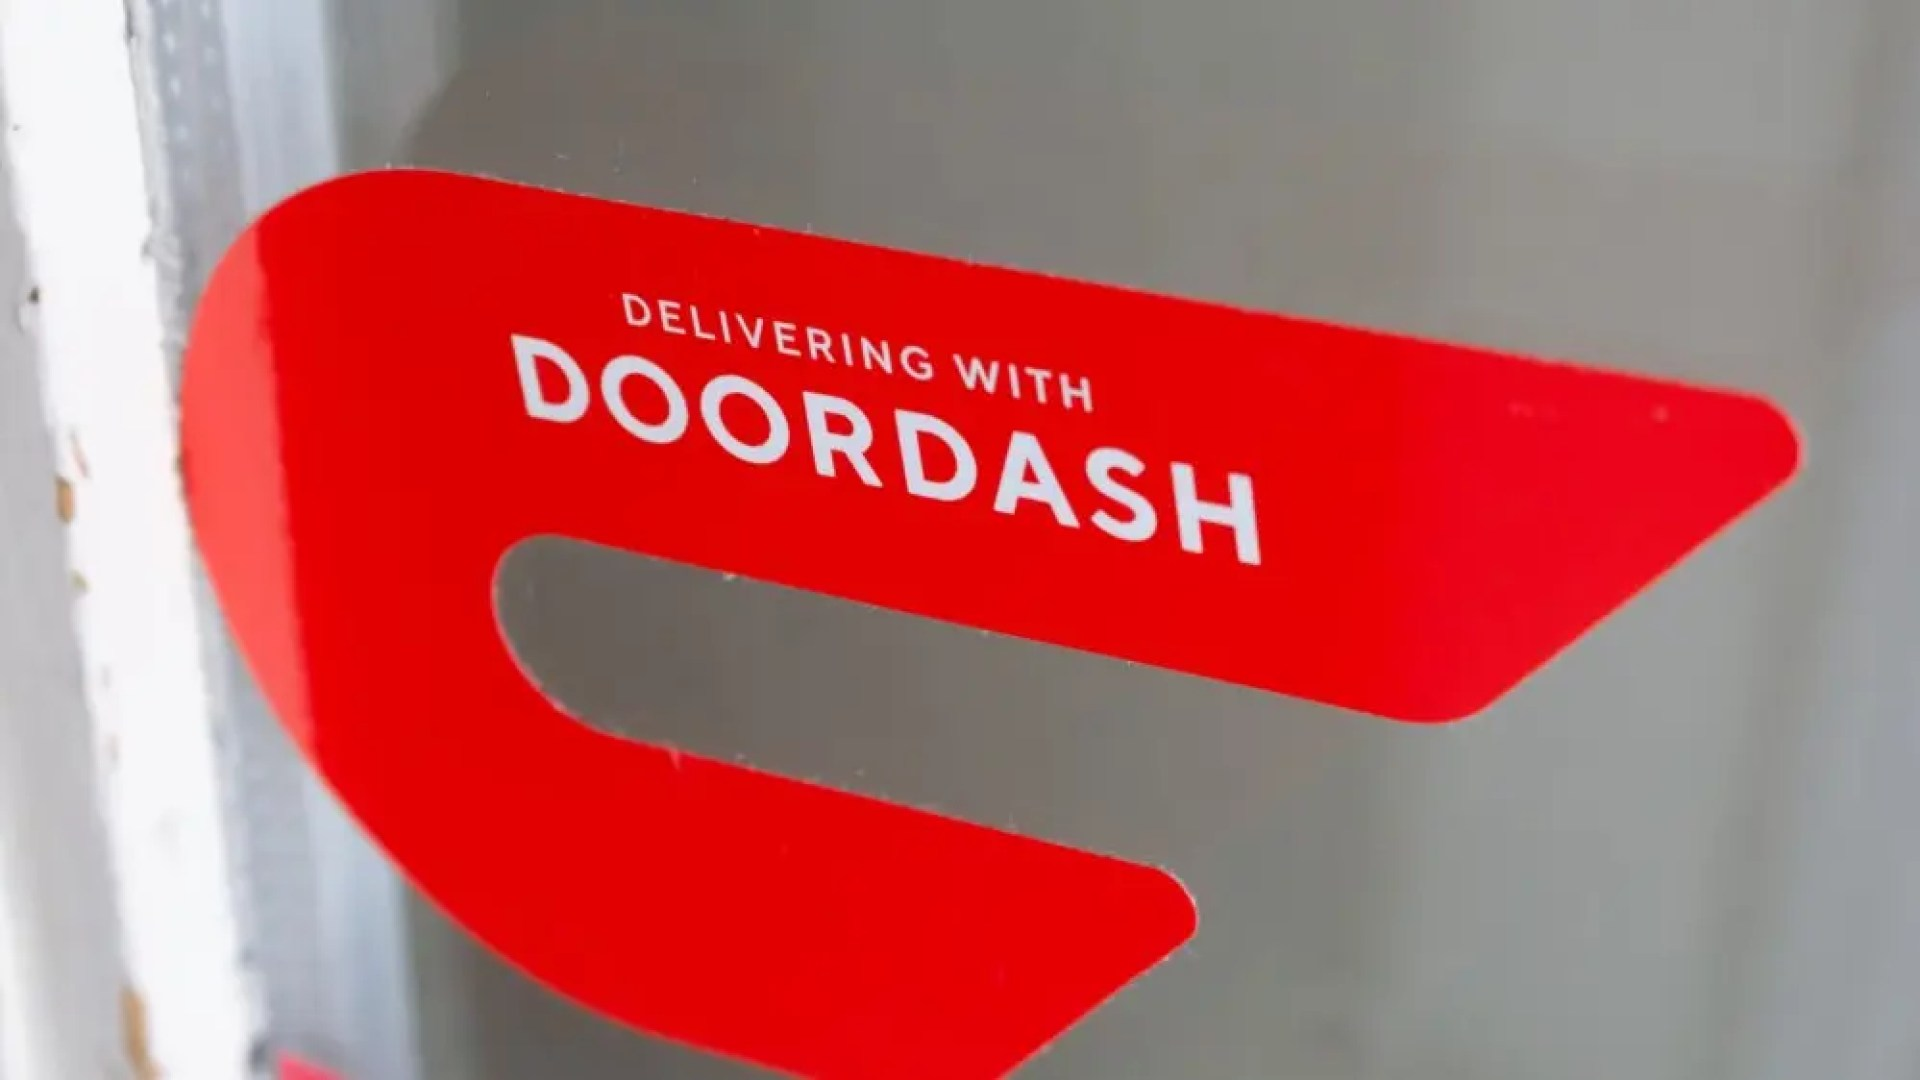 A DoorDash sticker on a window.